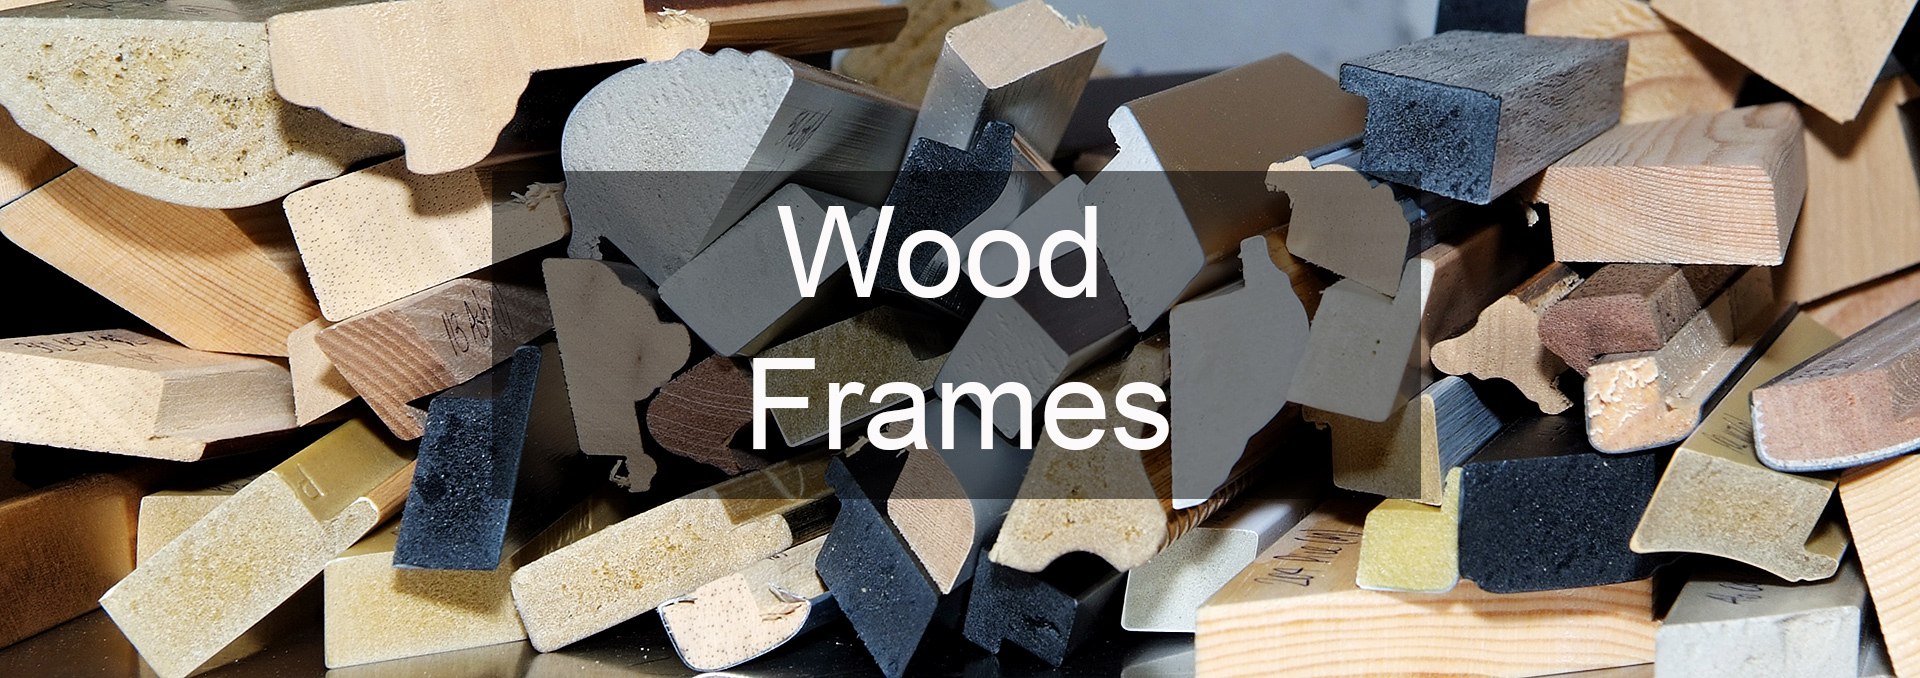 wood-frames-shop-top